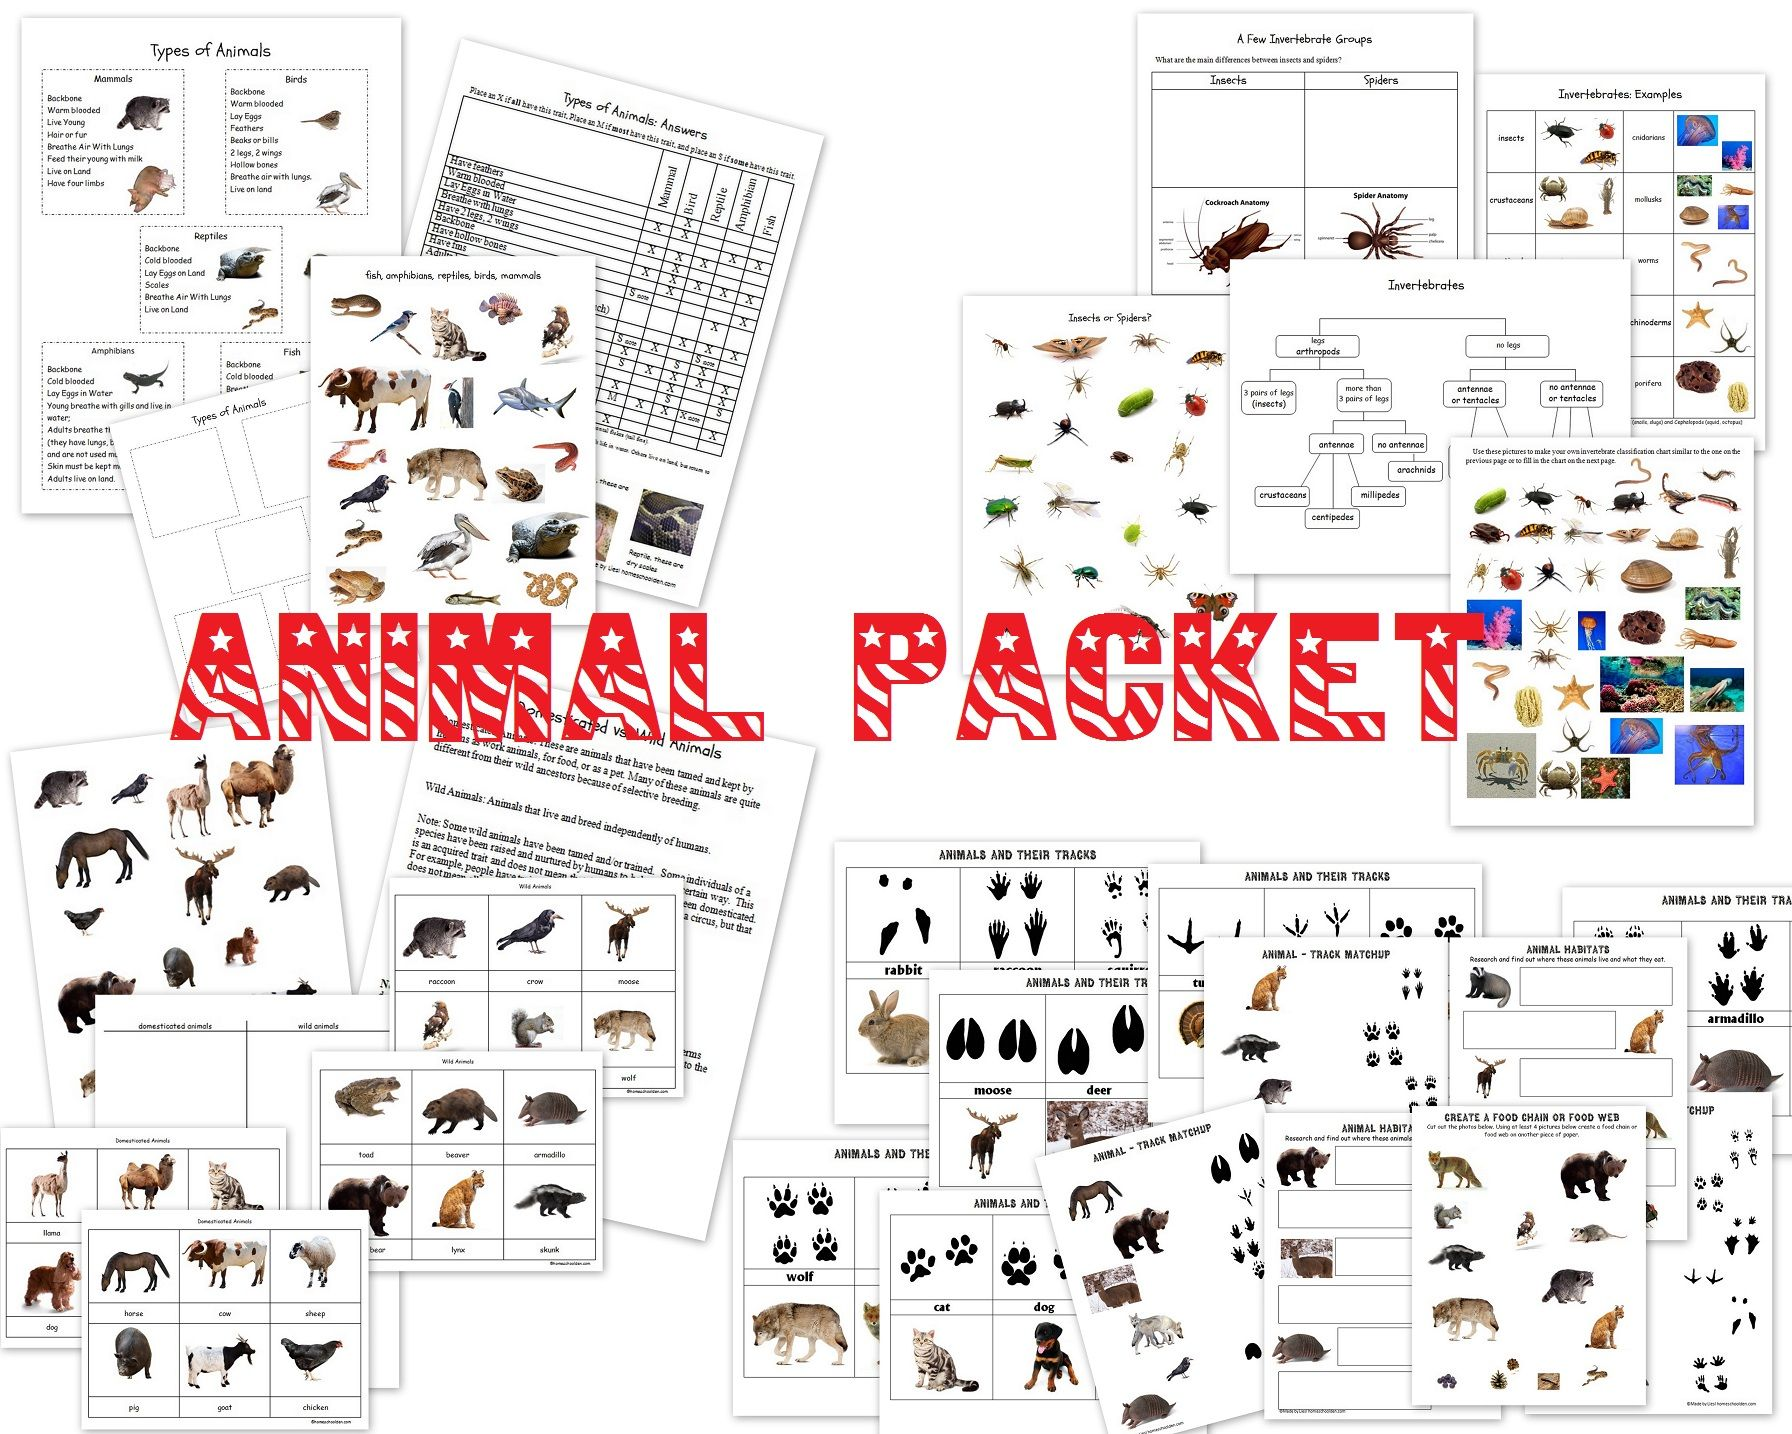 Worksheets Animal Classification Worksheet animal characteristics worksheets classification biology classification